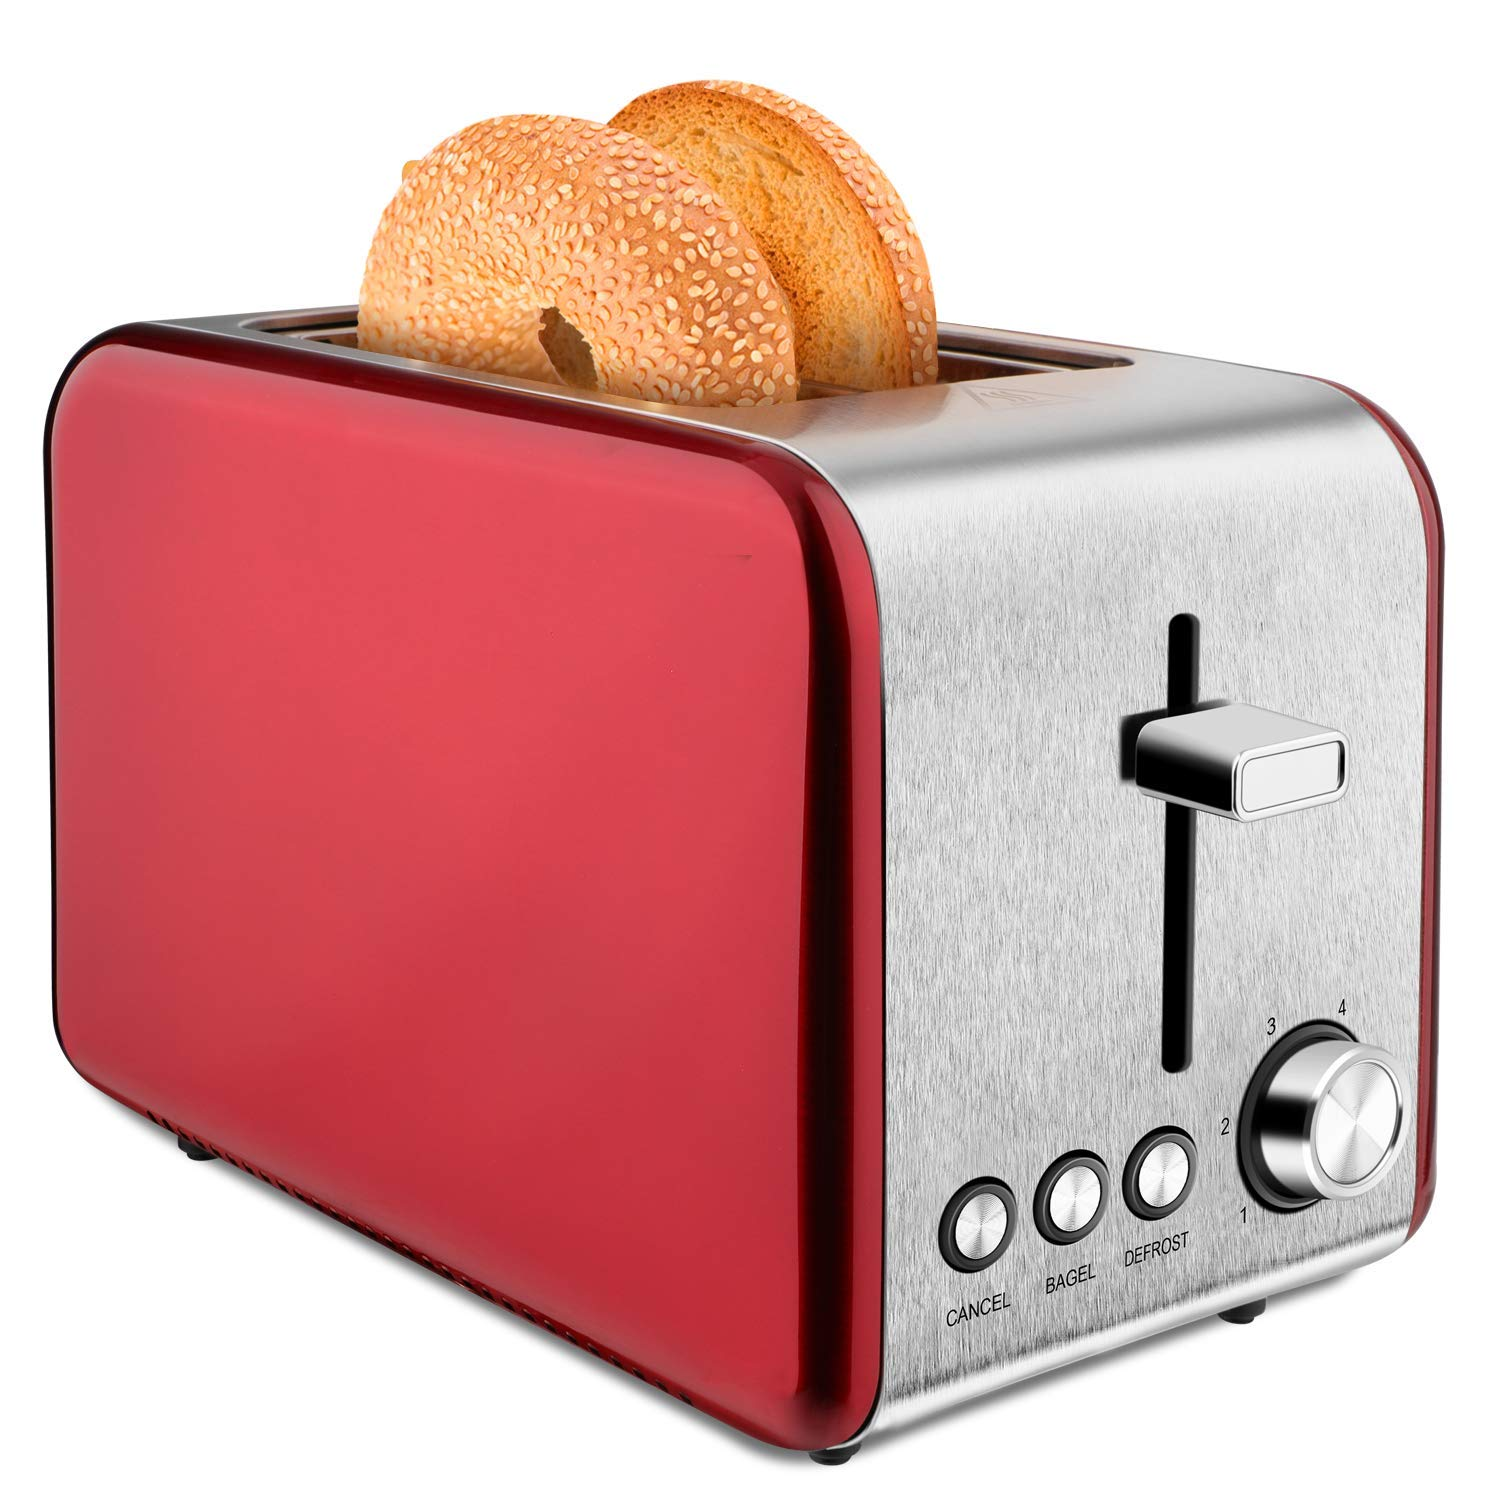 Great quality toaster!!!